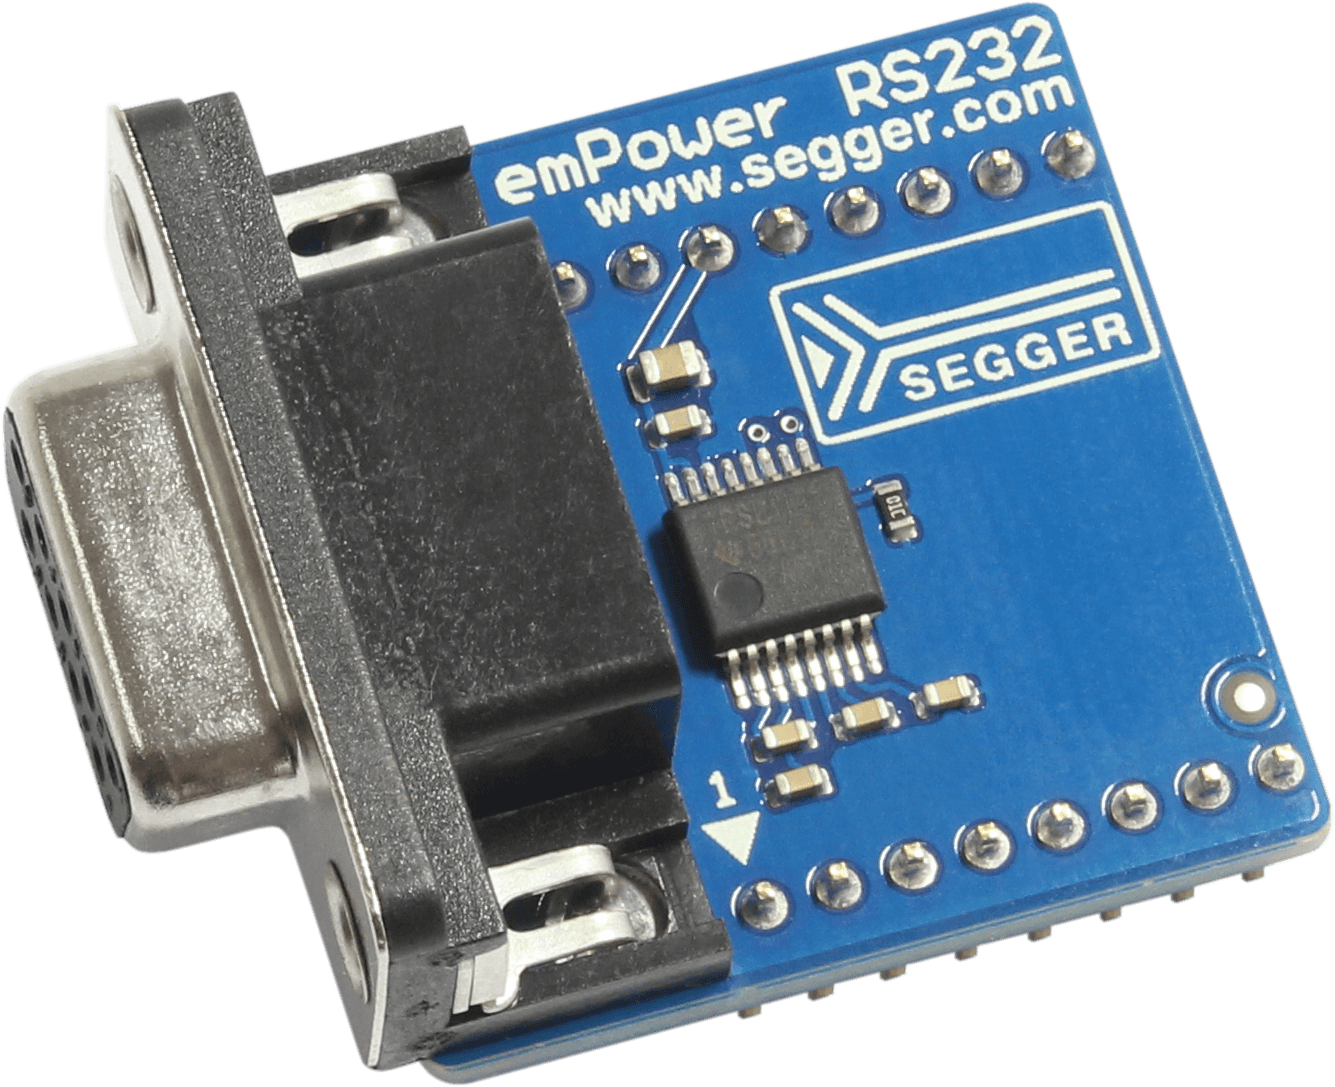 emPower | SEGGER - The Embedded Experts